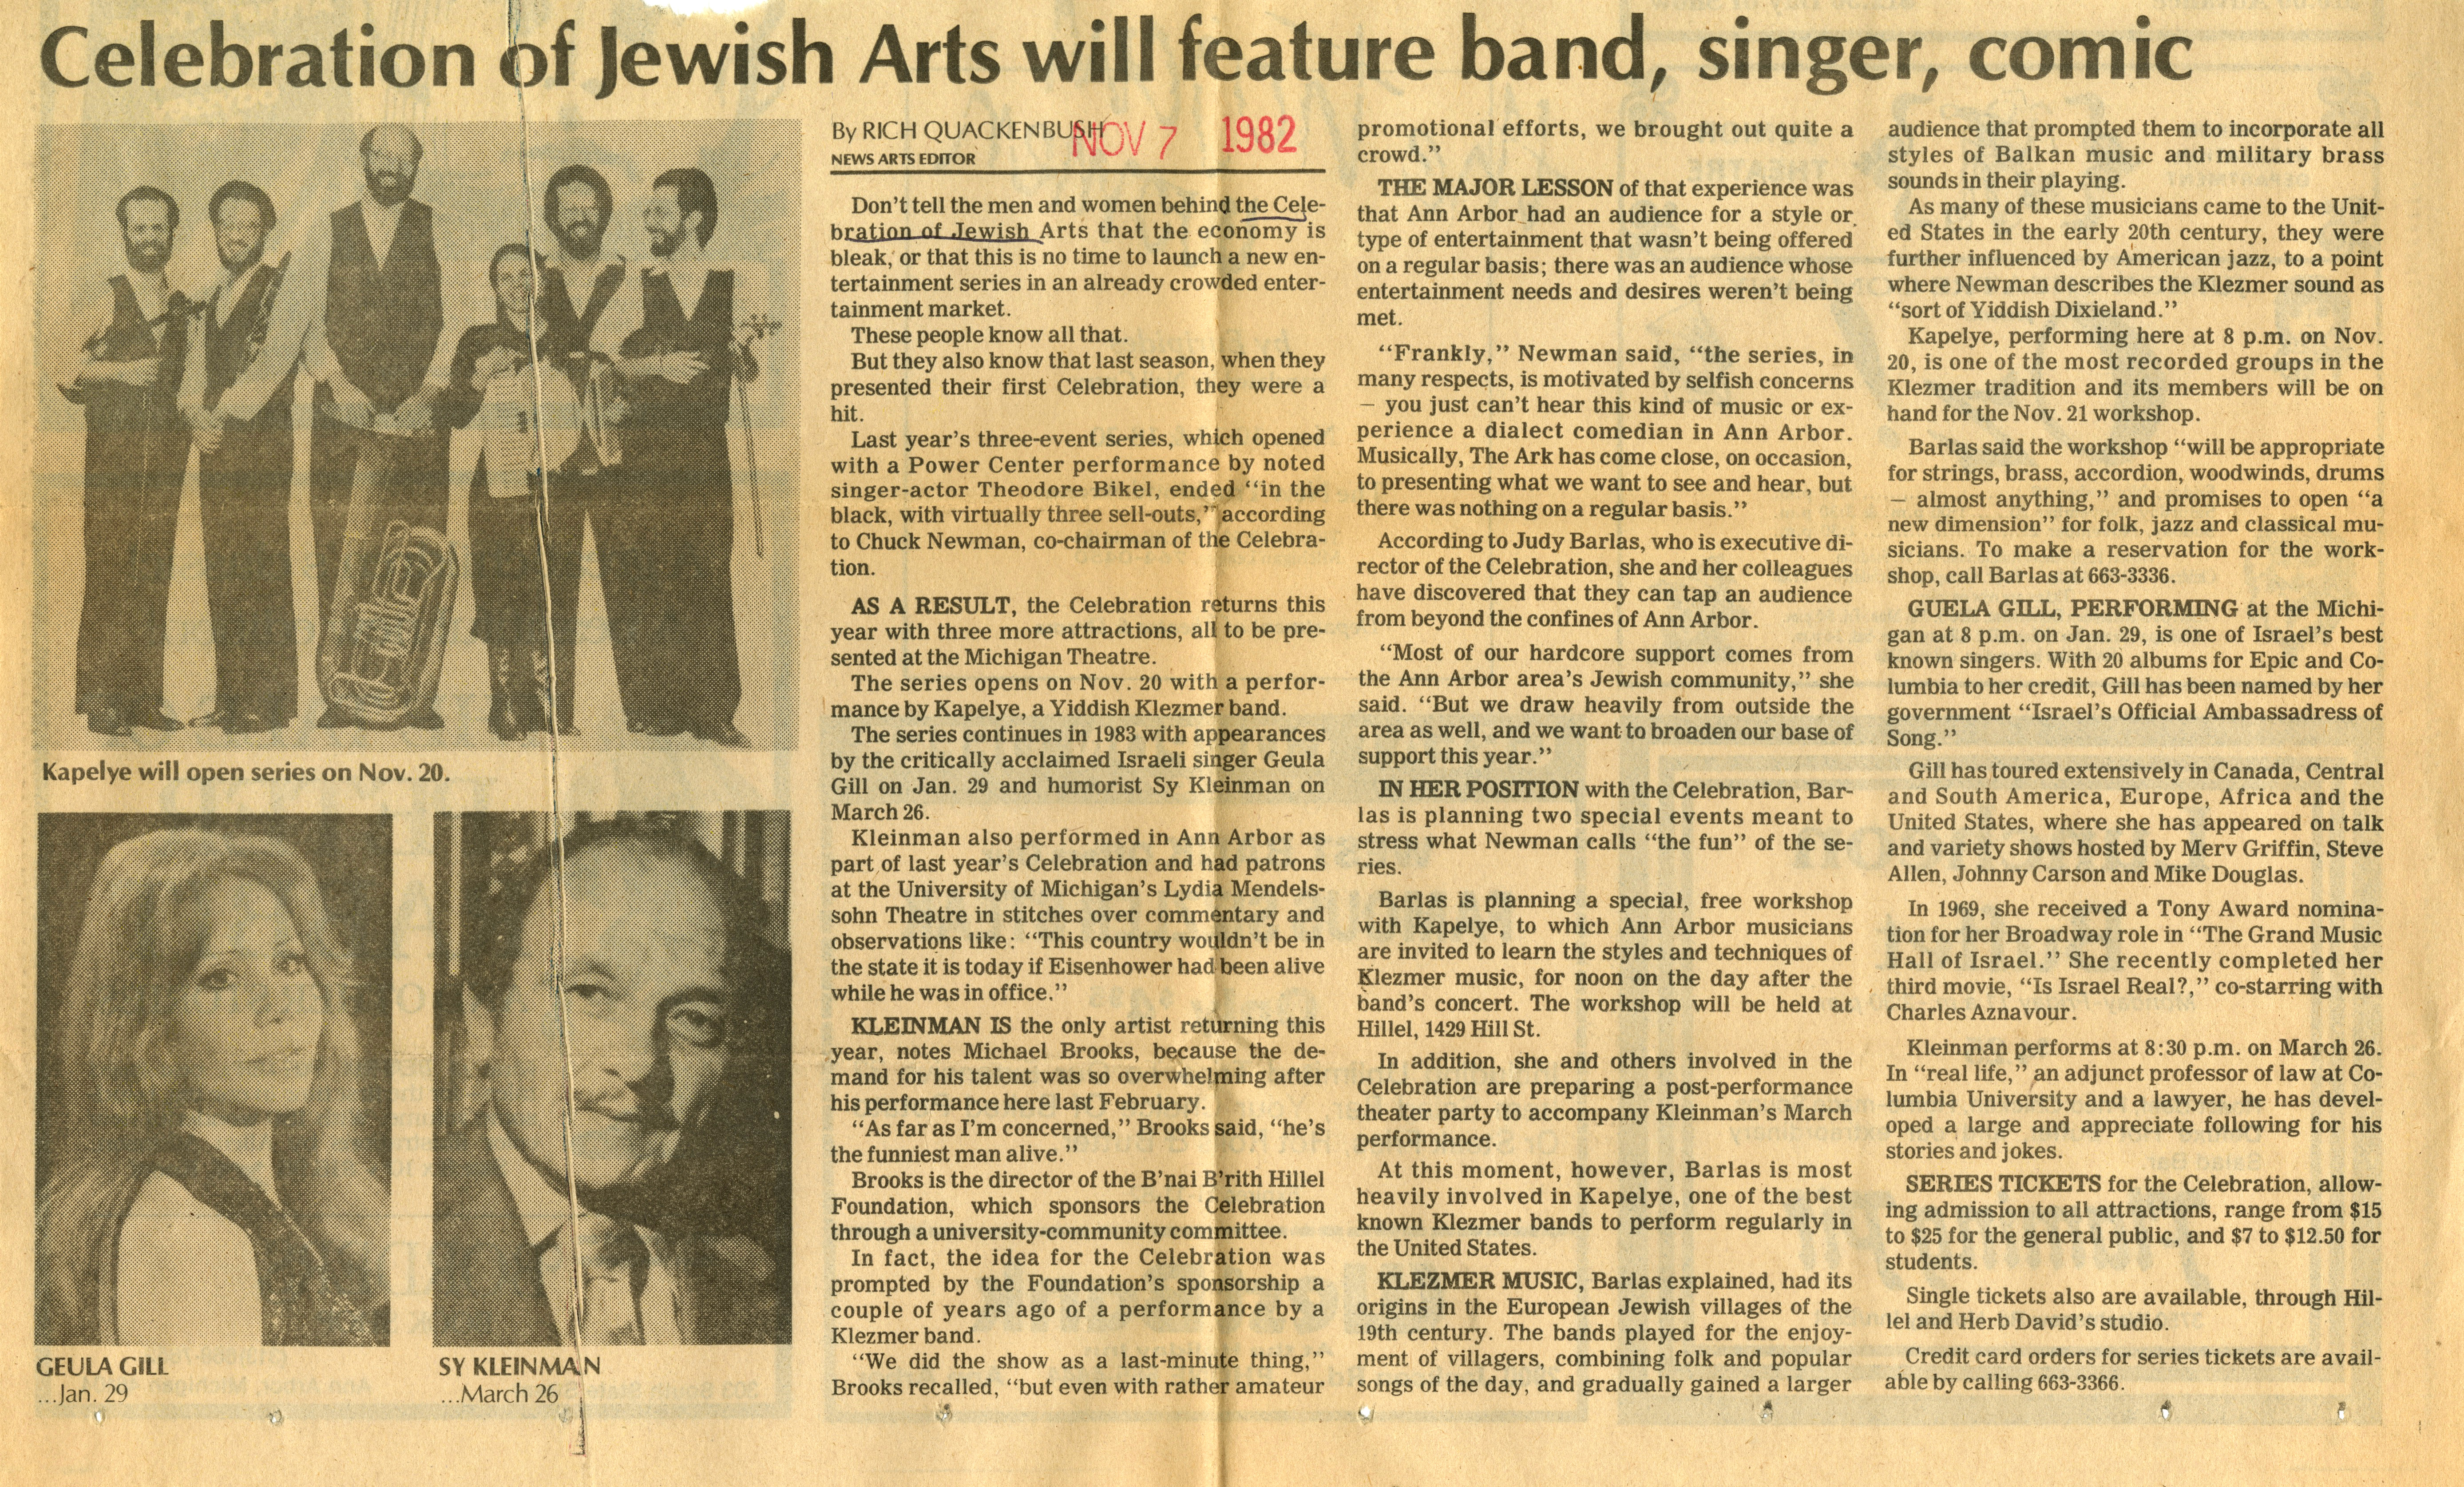 Celebration Of Jewish Arts Will Feature Band, Singer, Comic image